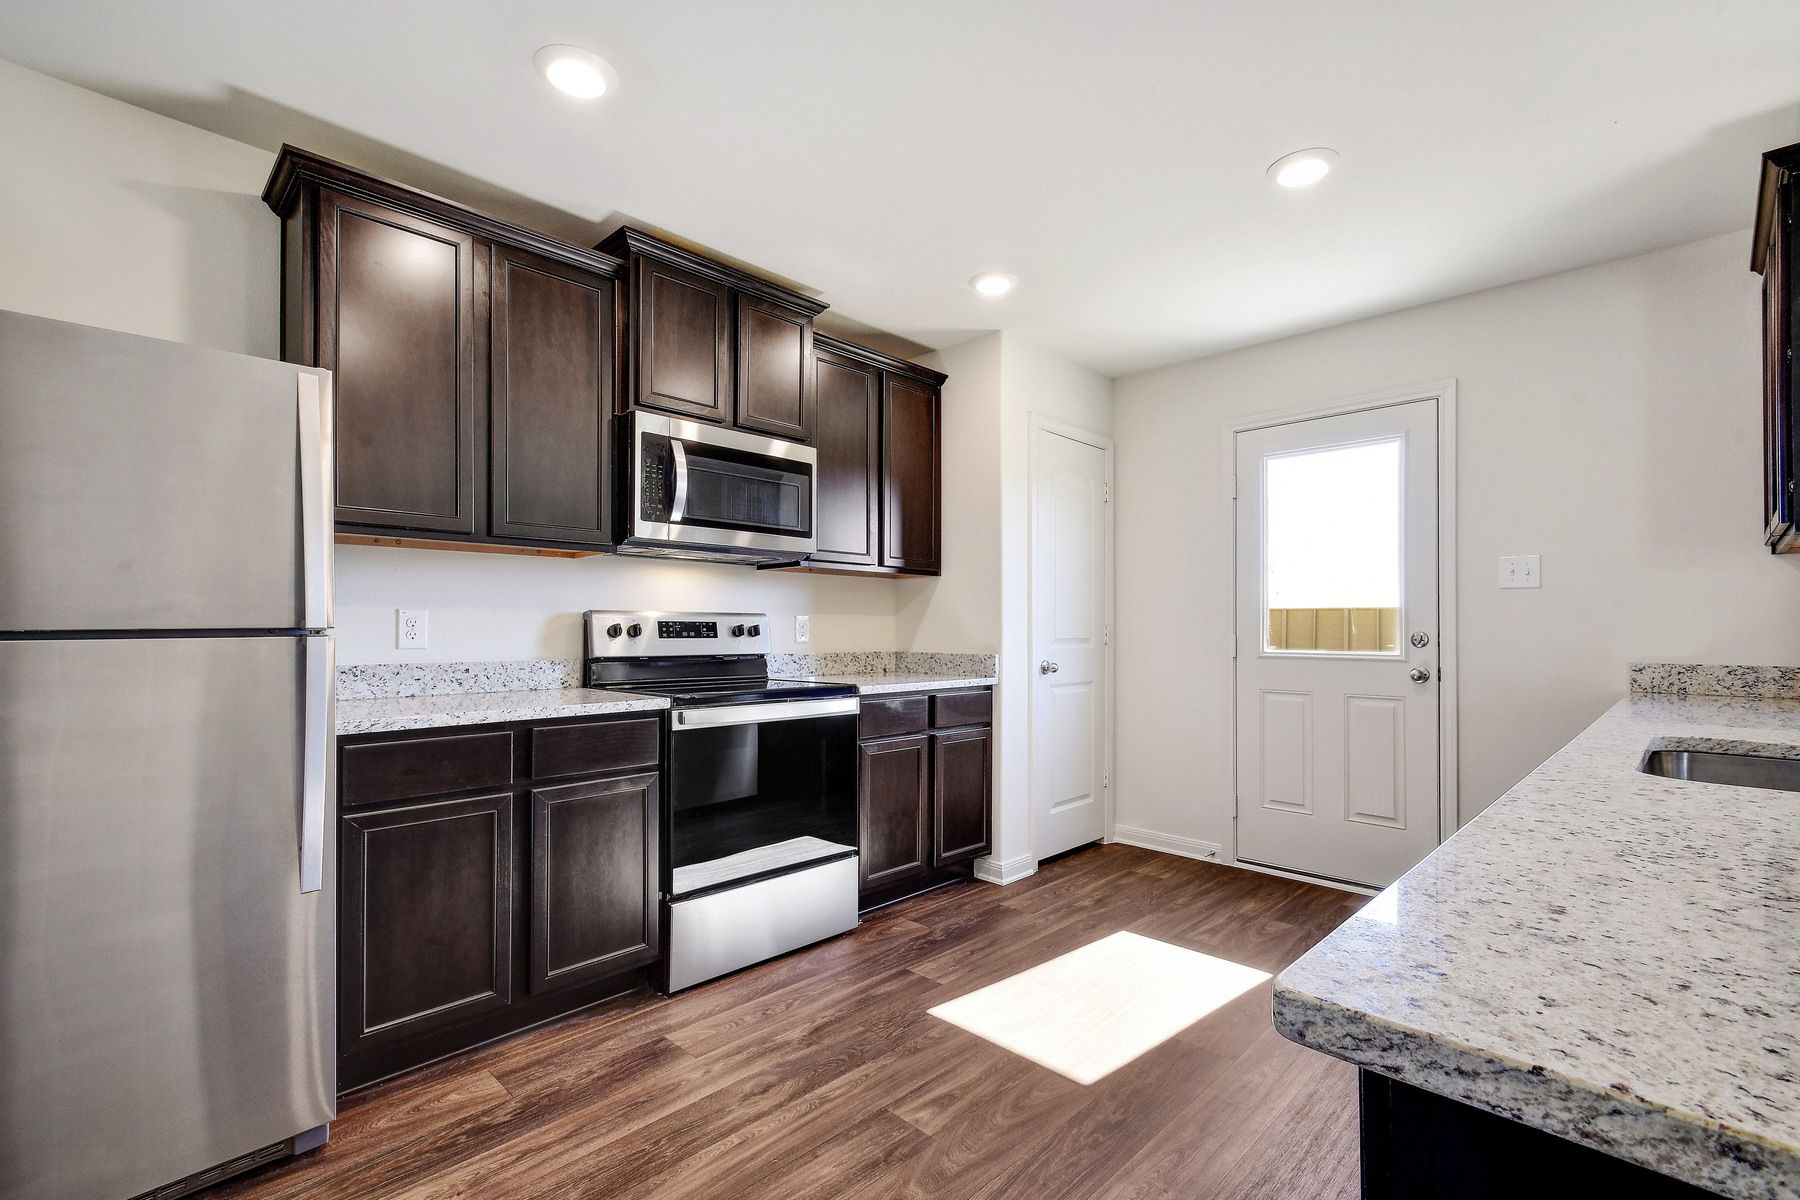 The Canyon by LGI Homes:The kitchen comes with a full suite of energy-efficient appliances!